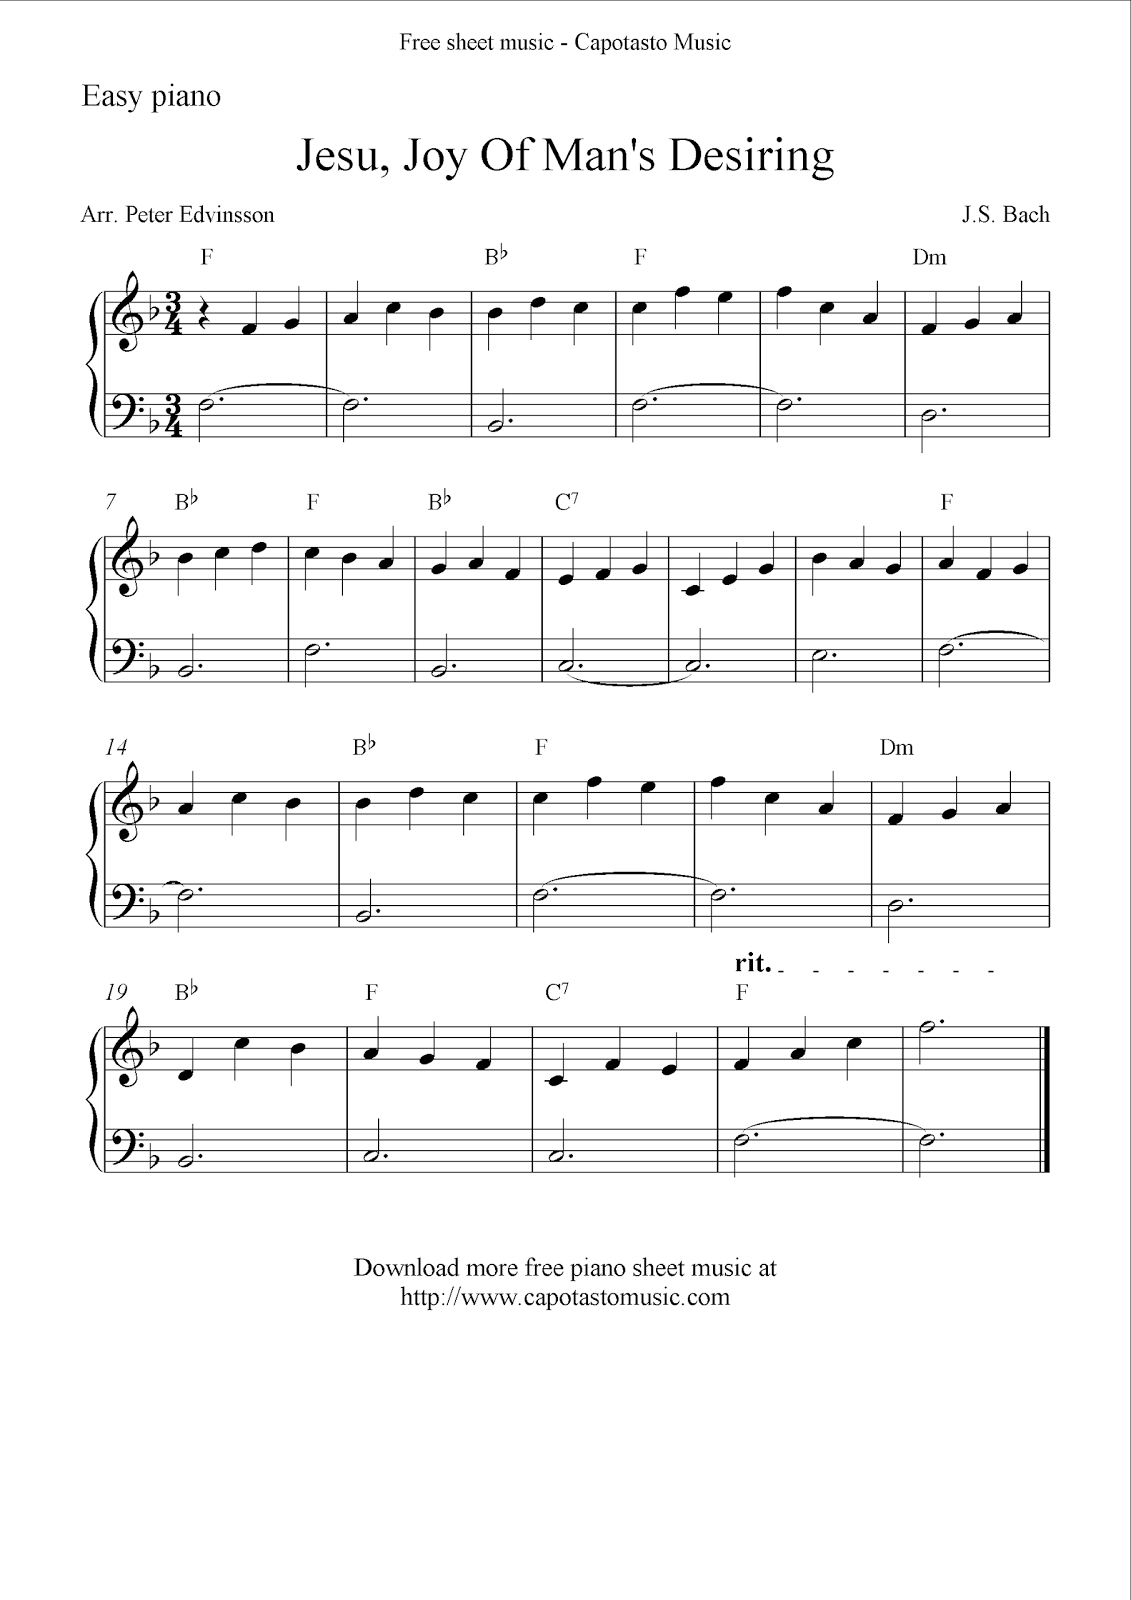 Free Easy Solo For Piano With The Melody Jesu, Joy Of Man's Desiring - Beginner Piano Worksheets Printable Free